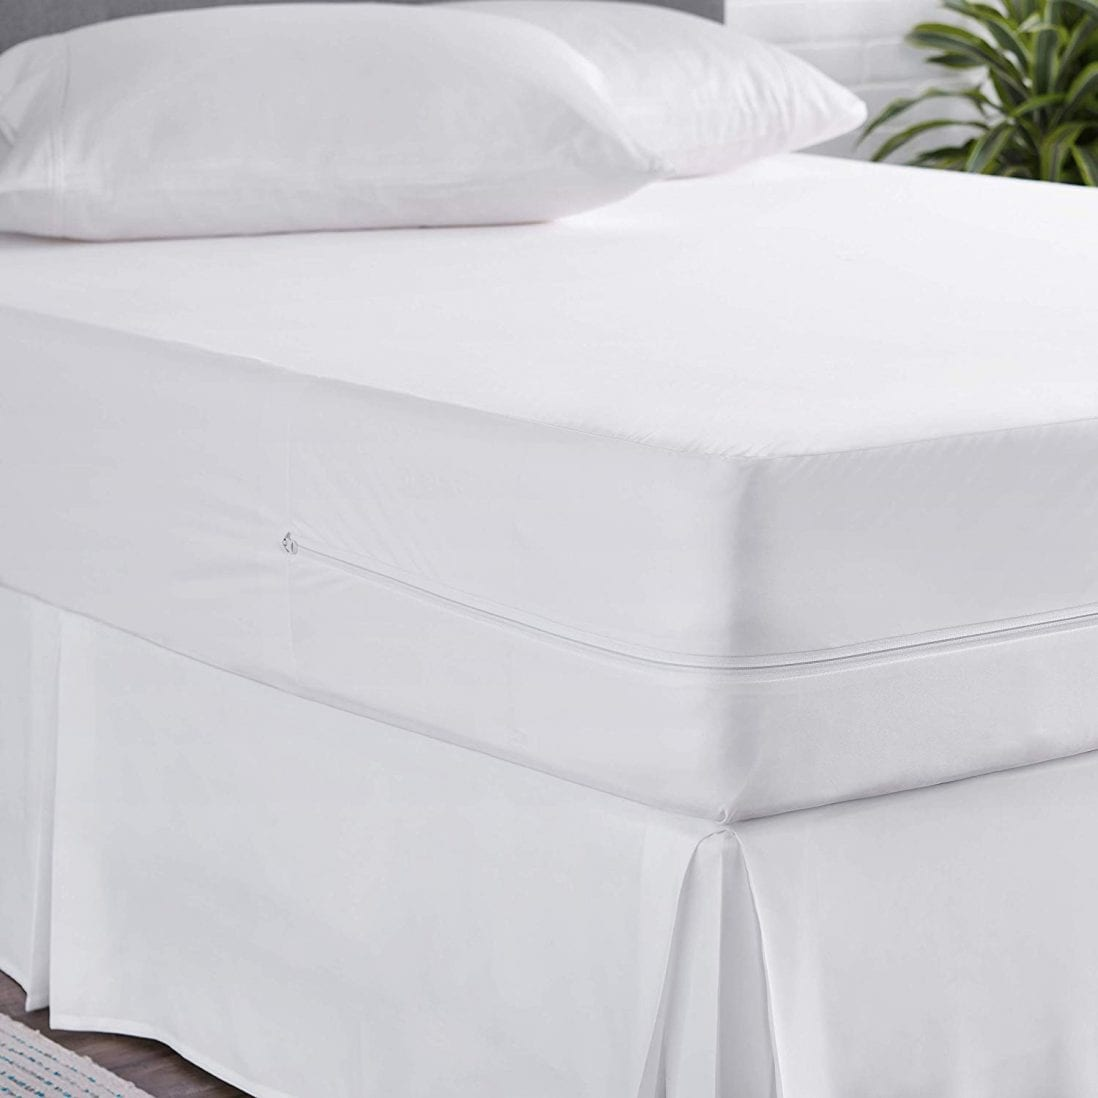 Bed Bug Mattress Cover.The Best Bed Bug Mattress Cover Of 2020 Sleep Tight